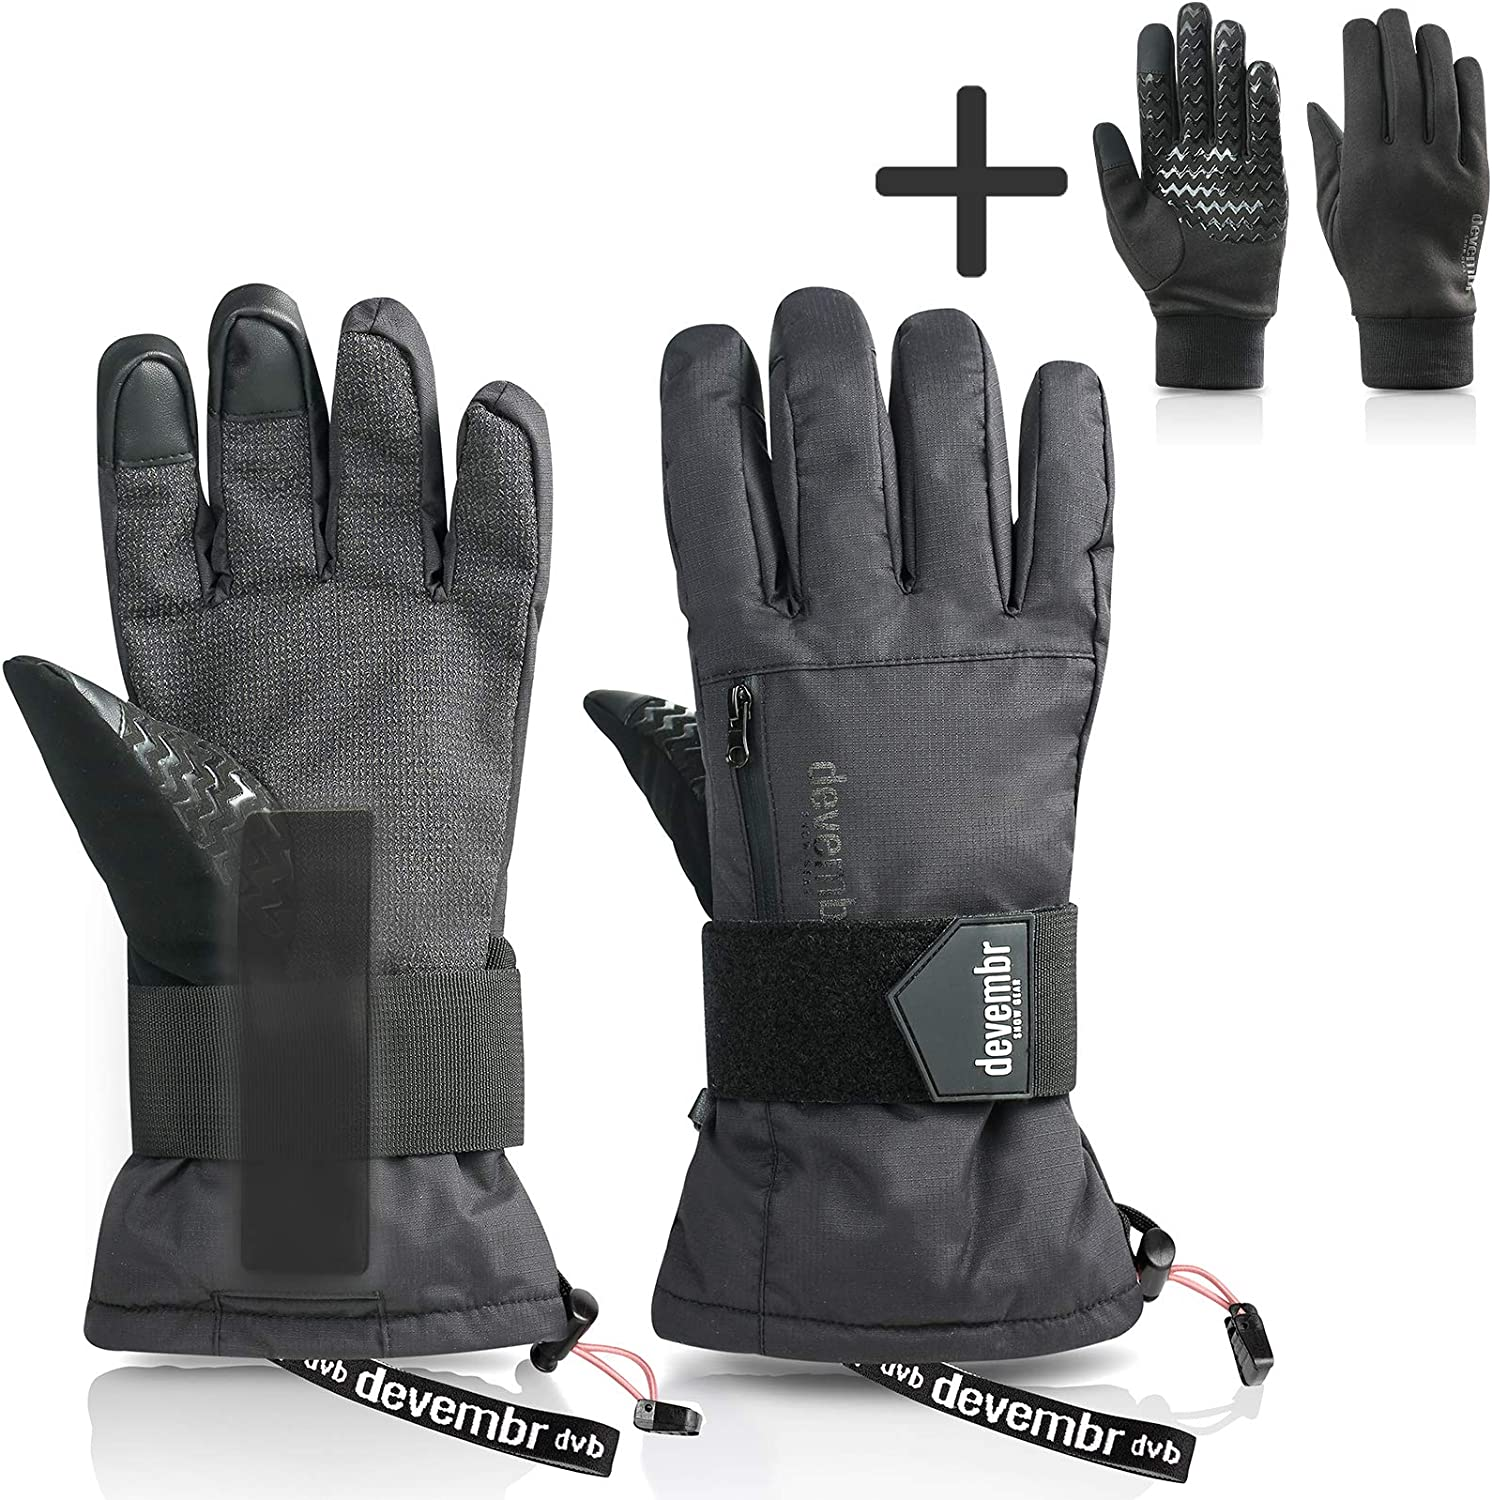 Wrist Protection for Snowboard Gloves One Pair devembr Wrist Guards Ski Gloves